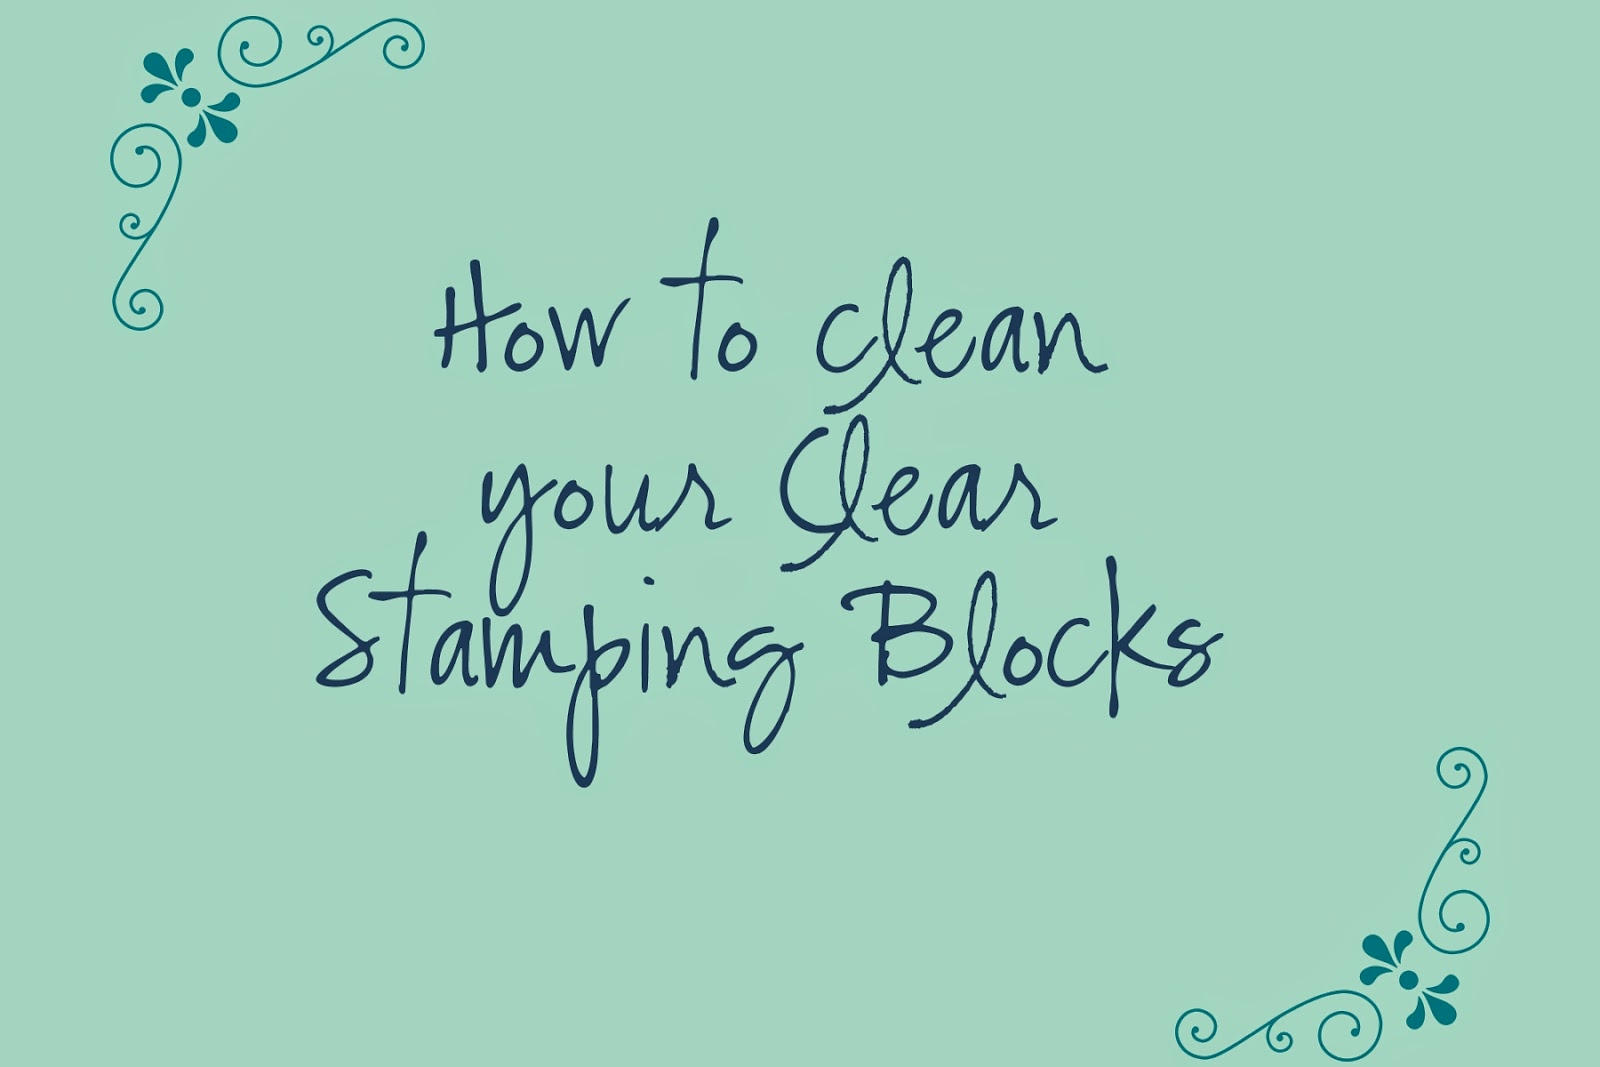 Click here for a video tutorial on how to clean your Clear Mount Stamping Blocks